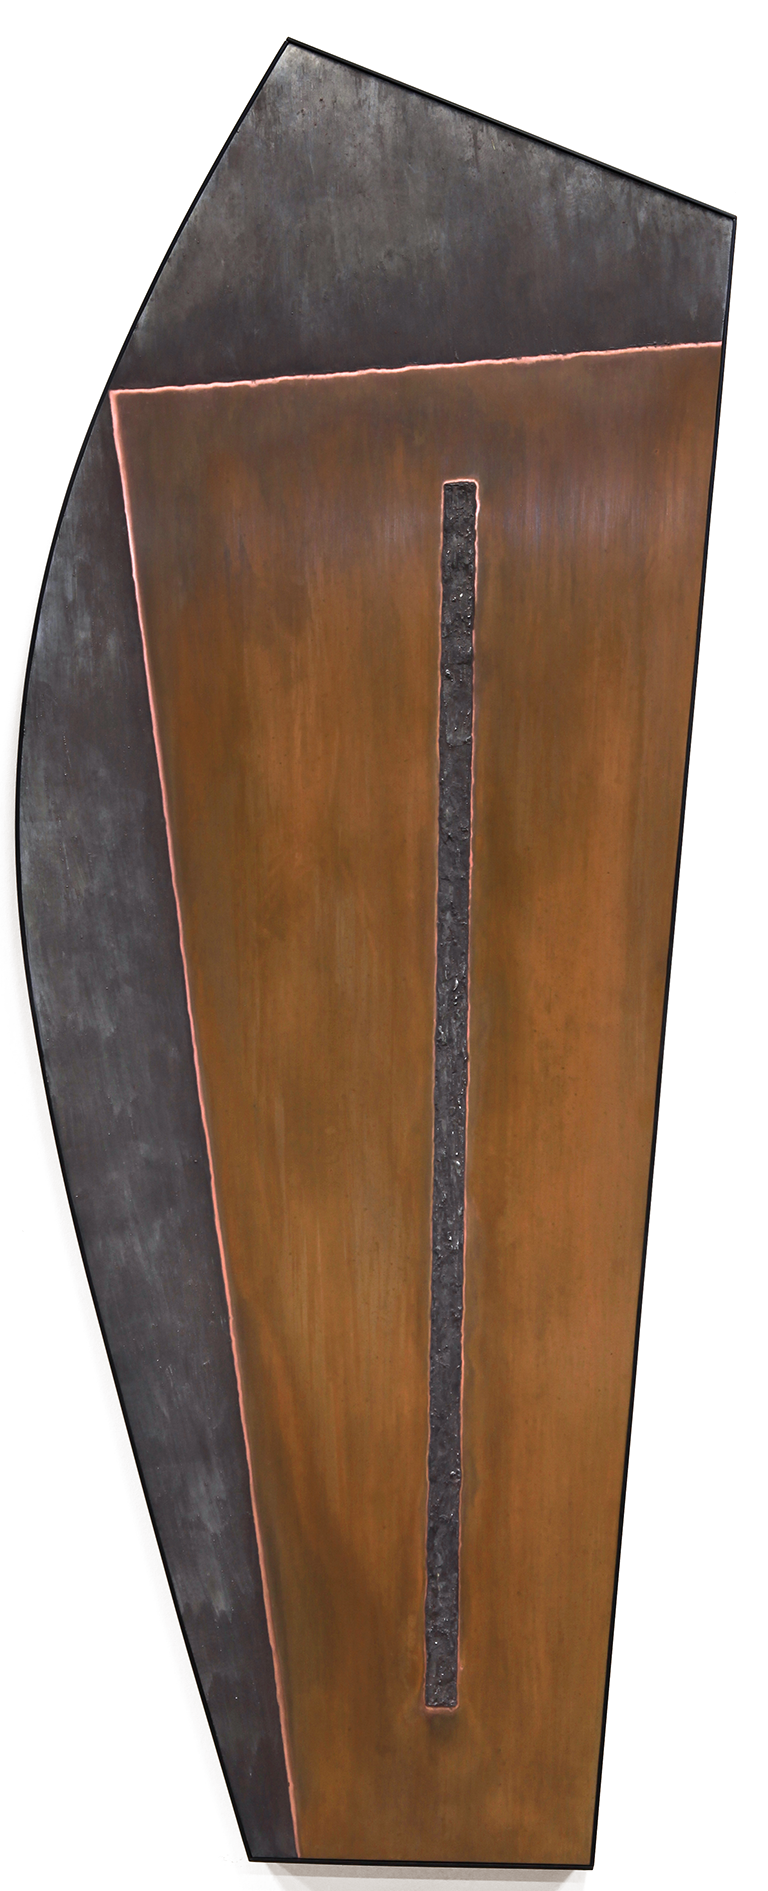 "Linear Composition No. 7 , Oct.-Nov.2014, copper, tin, pine, plywood aluminum, 59 3/8""h x 34 5/8""w x 2""d"